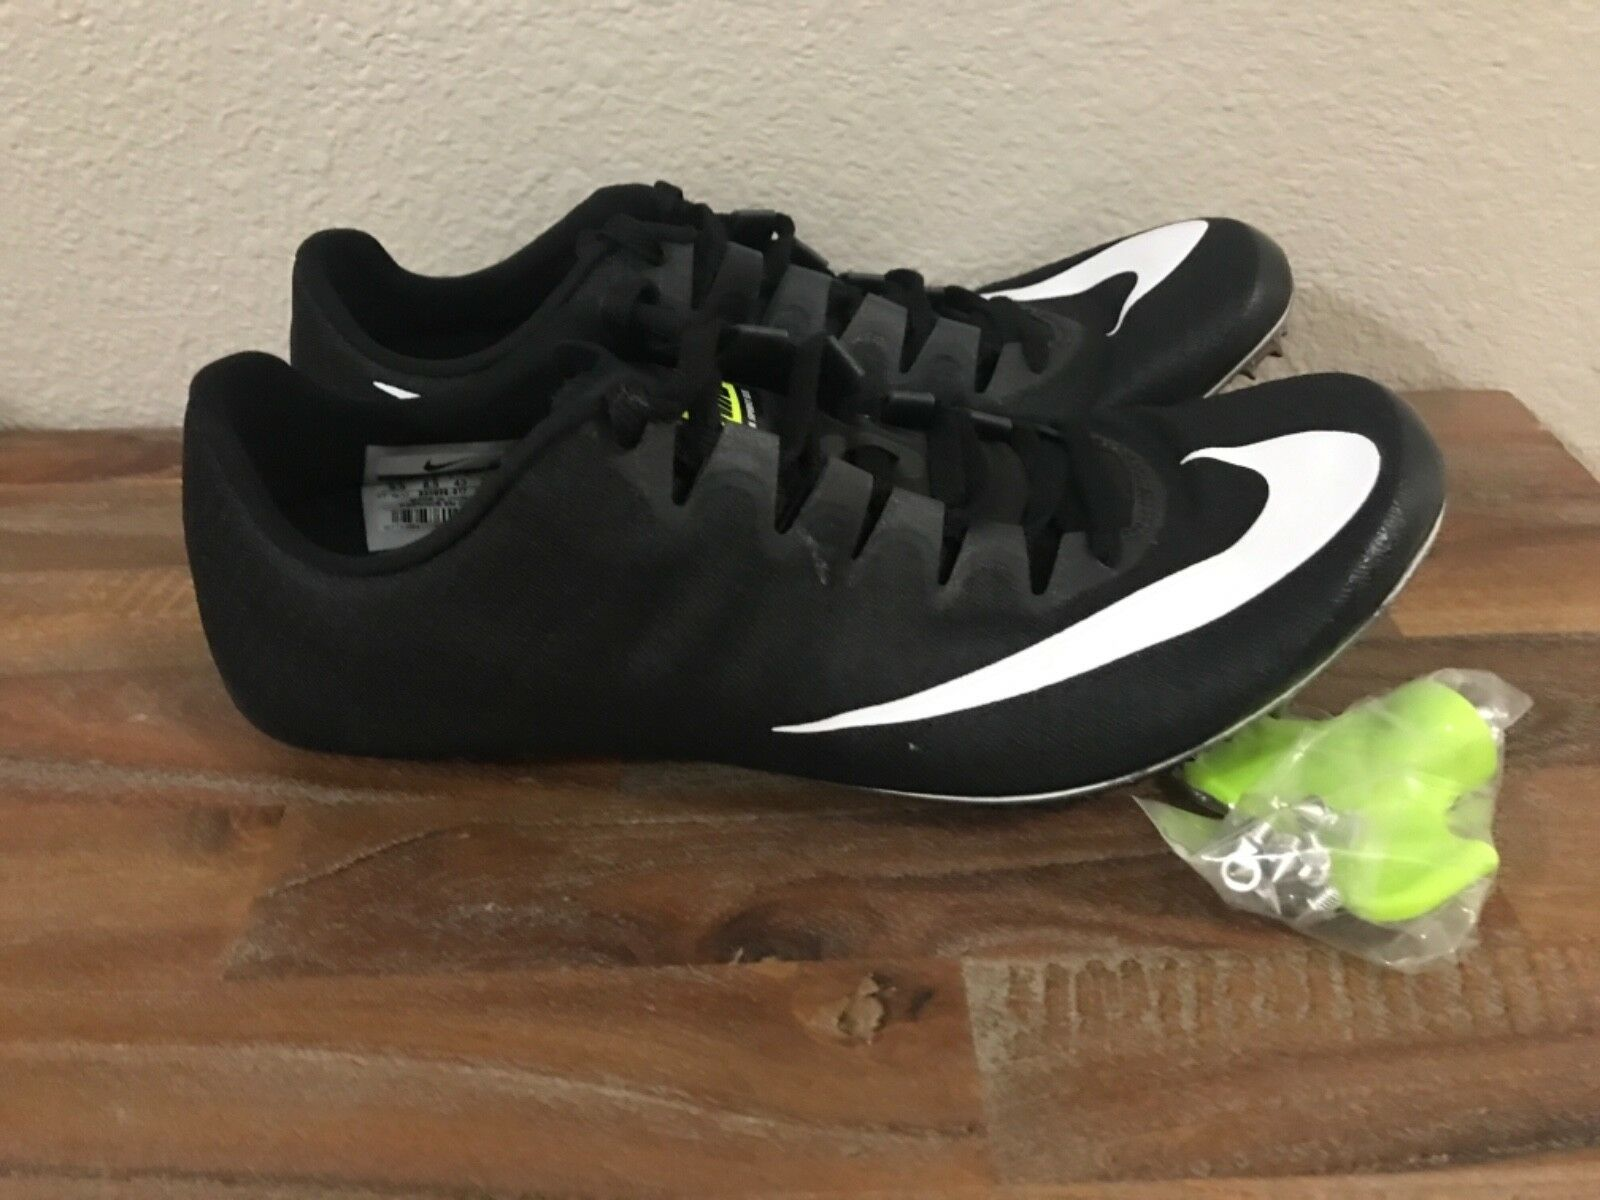 Nike Zoom Black Superfly Elite Track Spikes Black Zoom White 835996-017 Sz 6.5 9, 10.5-11.5 3b4a98